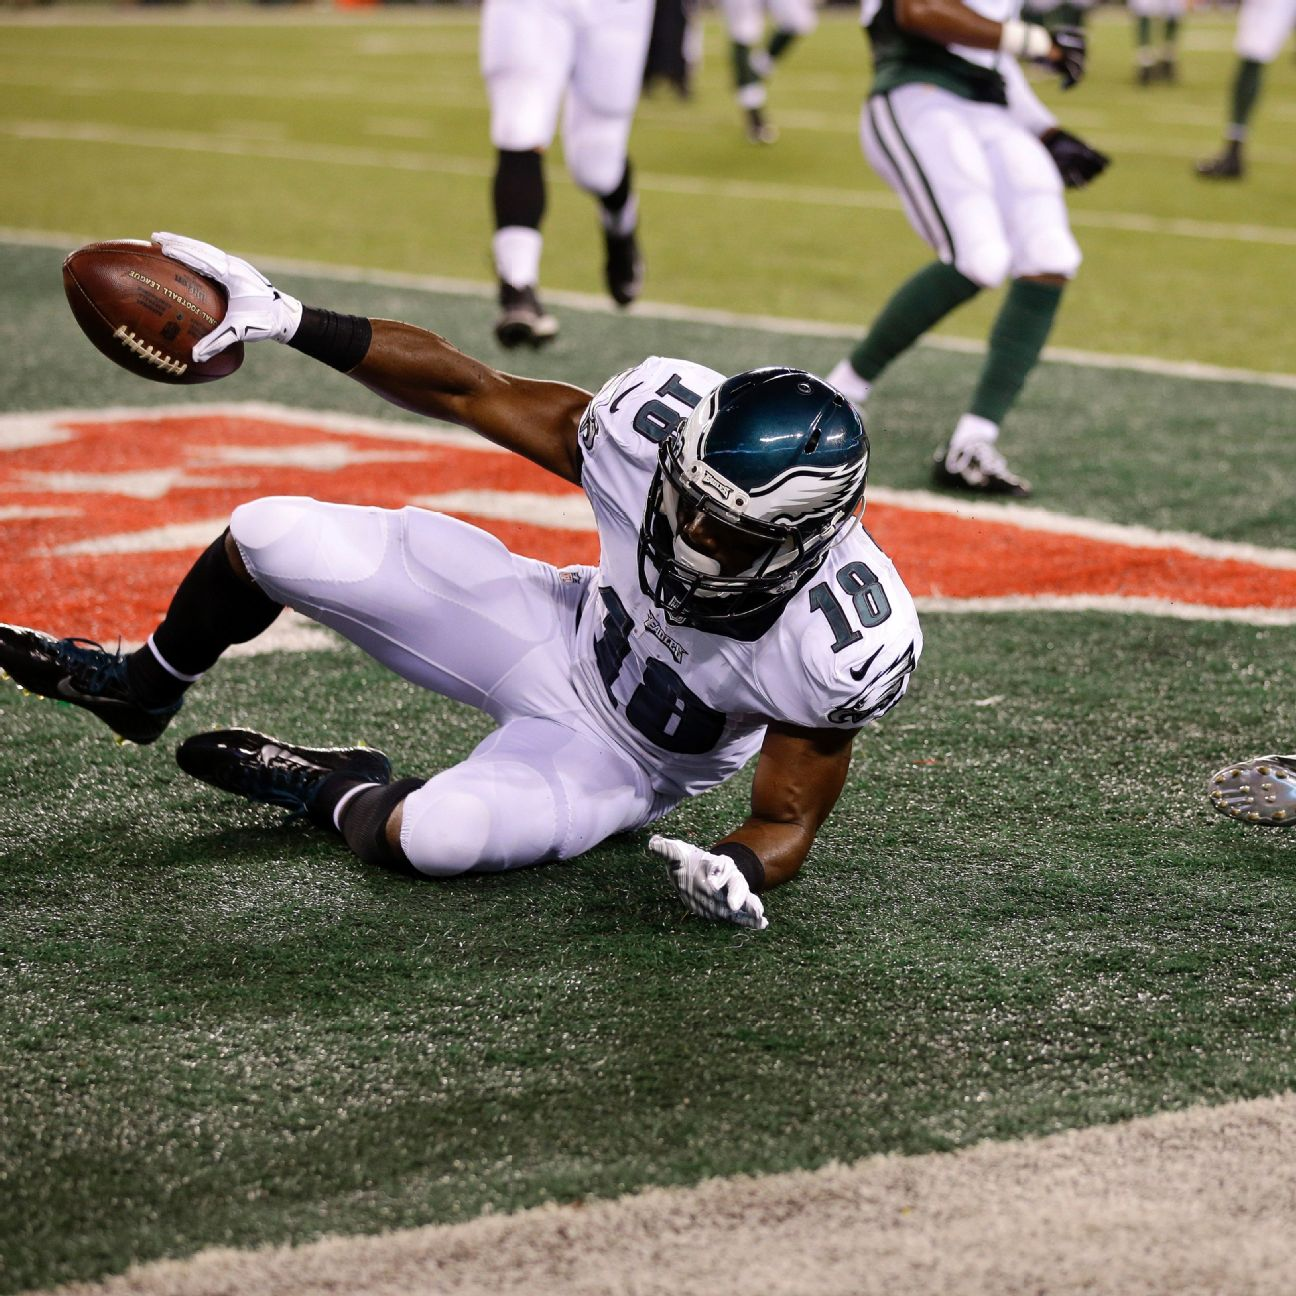 Eagles rookie Rasheed Bailey catches TD, hopes to stay